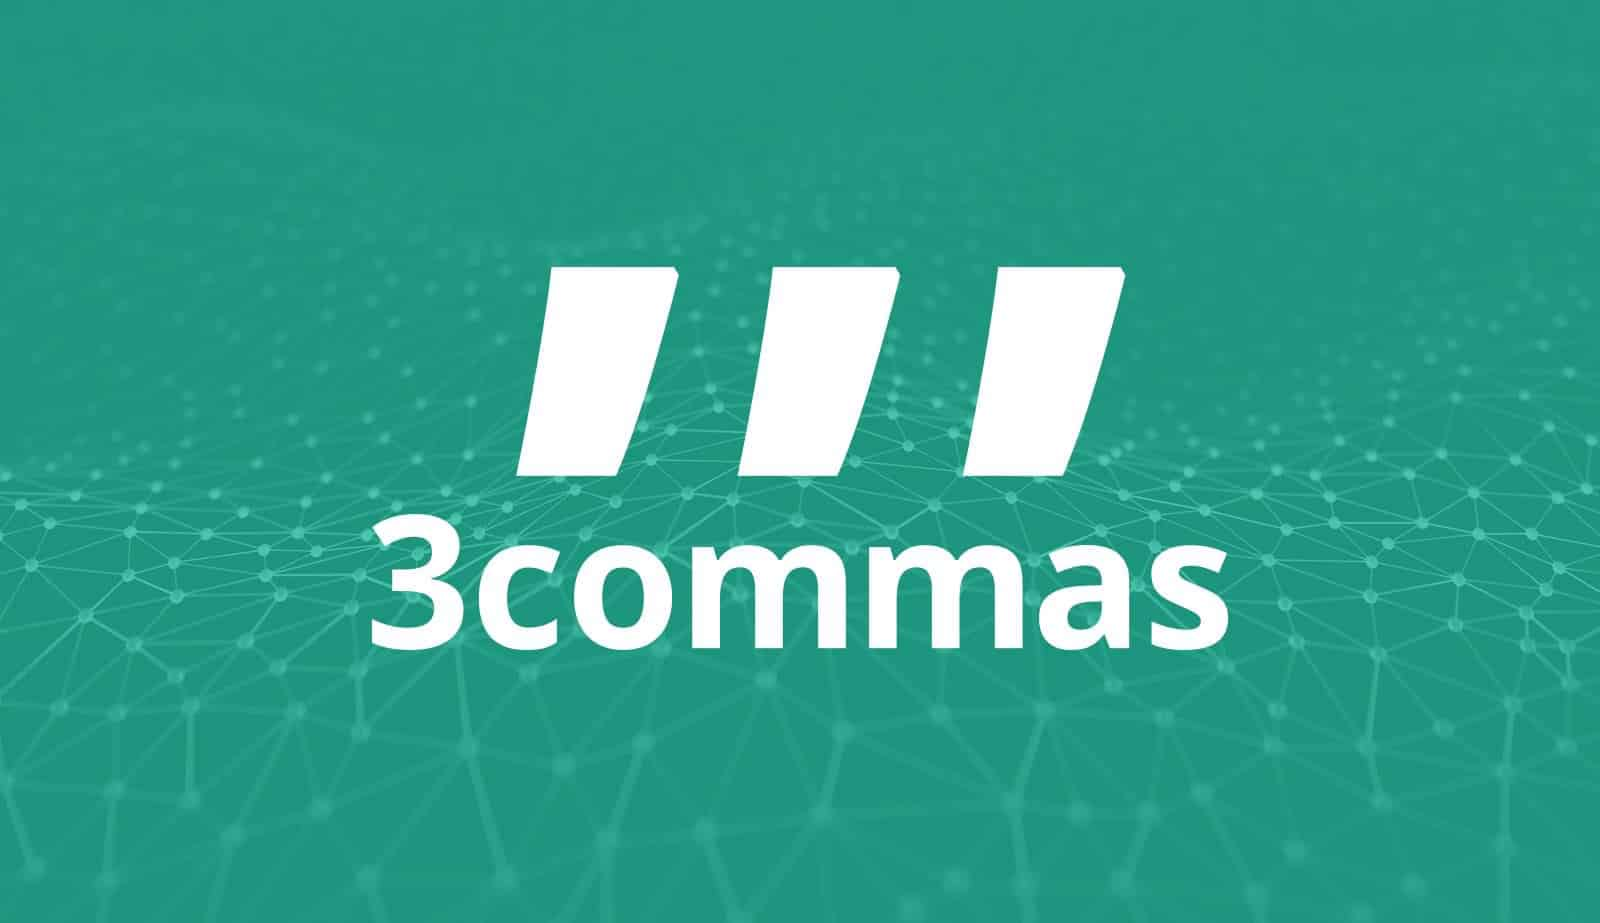 How 2019 went for 3commas! Major Developments and partnerships